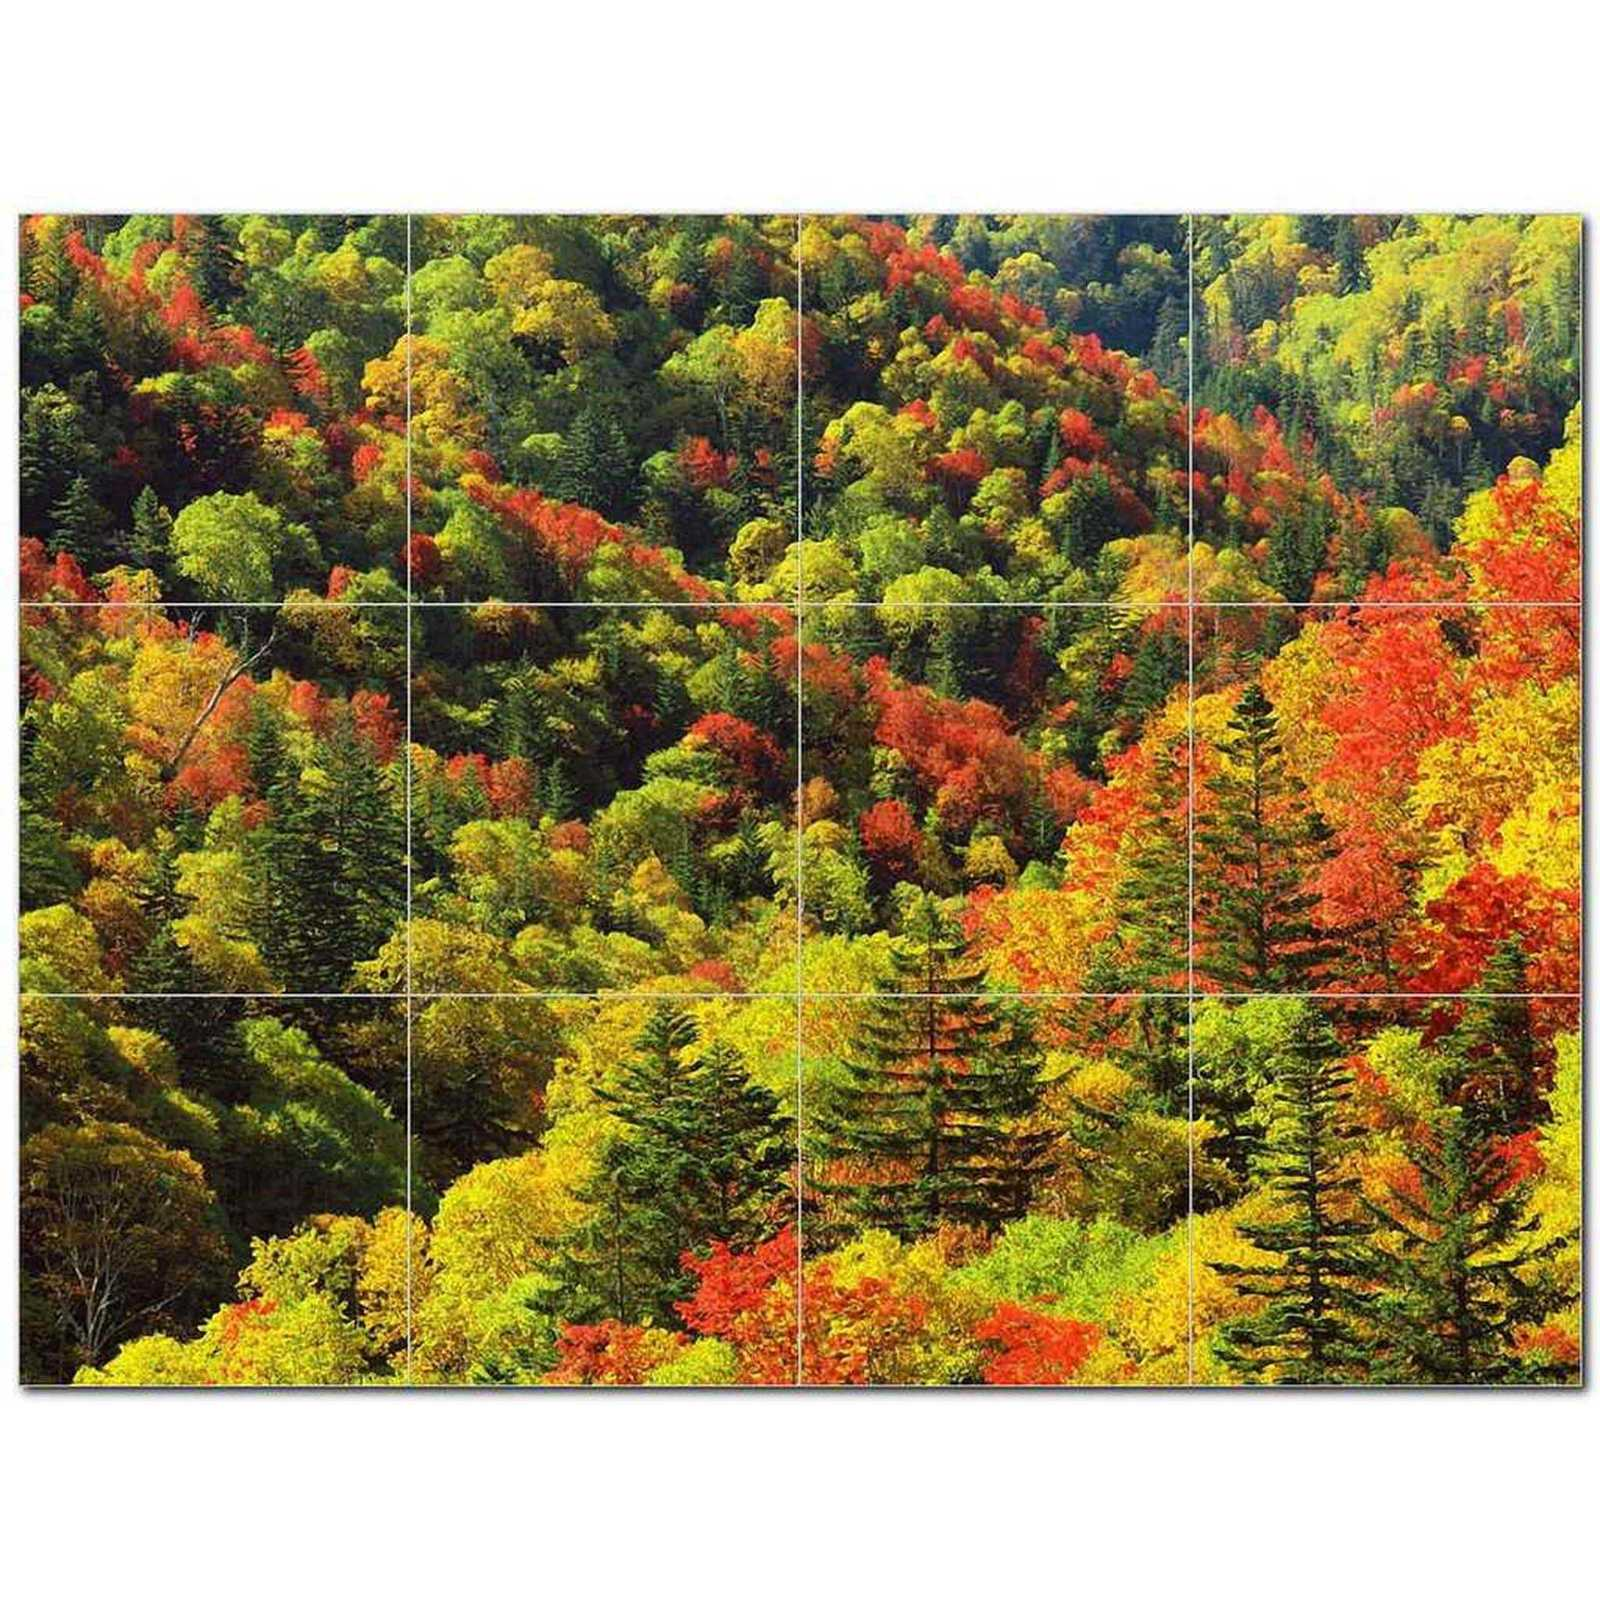 Primary image for Trees Leaves Ceramic Tile Mural Kitchen Backsplash Bathroom Shower BAZ406005